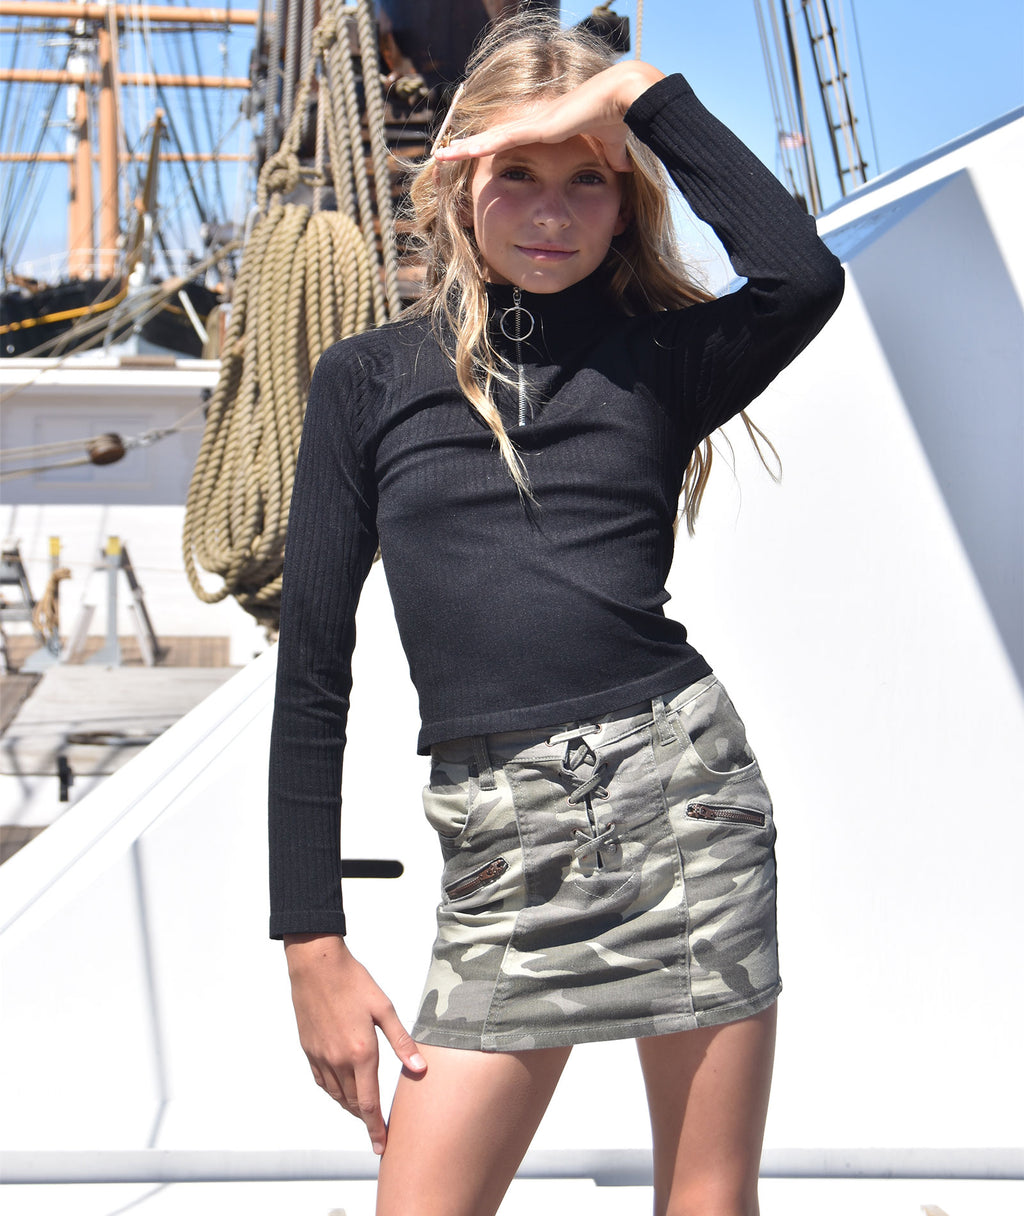 Pinc Premium Girls Camo Lace Up Skirt